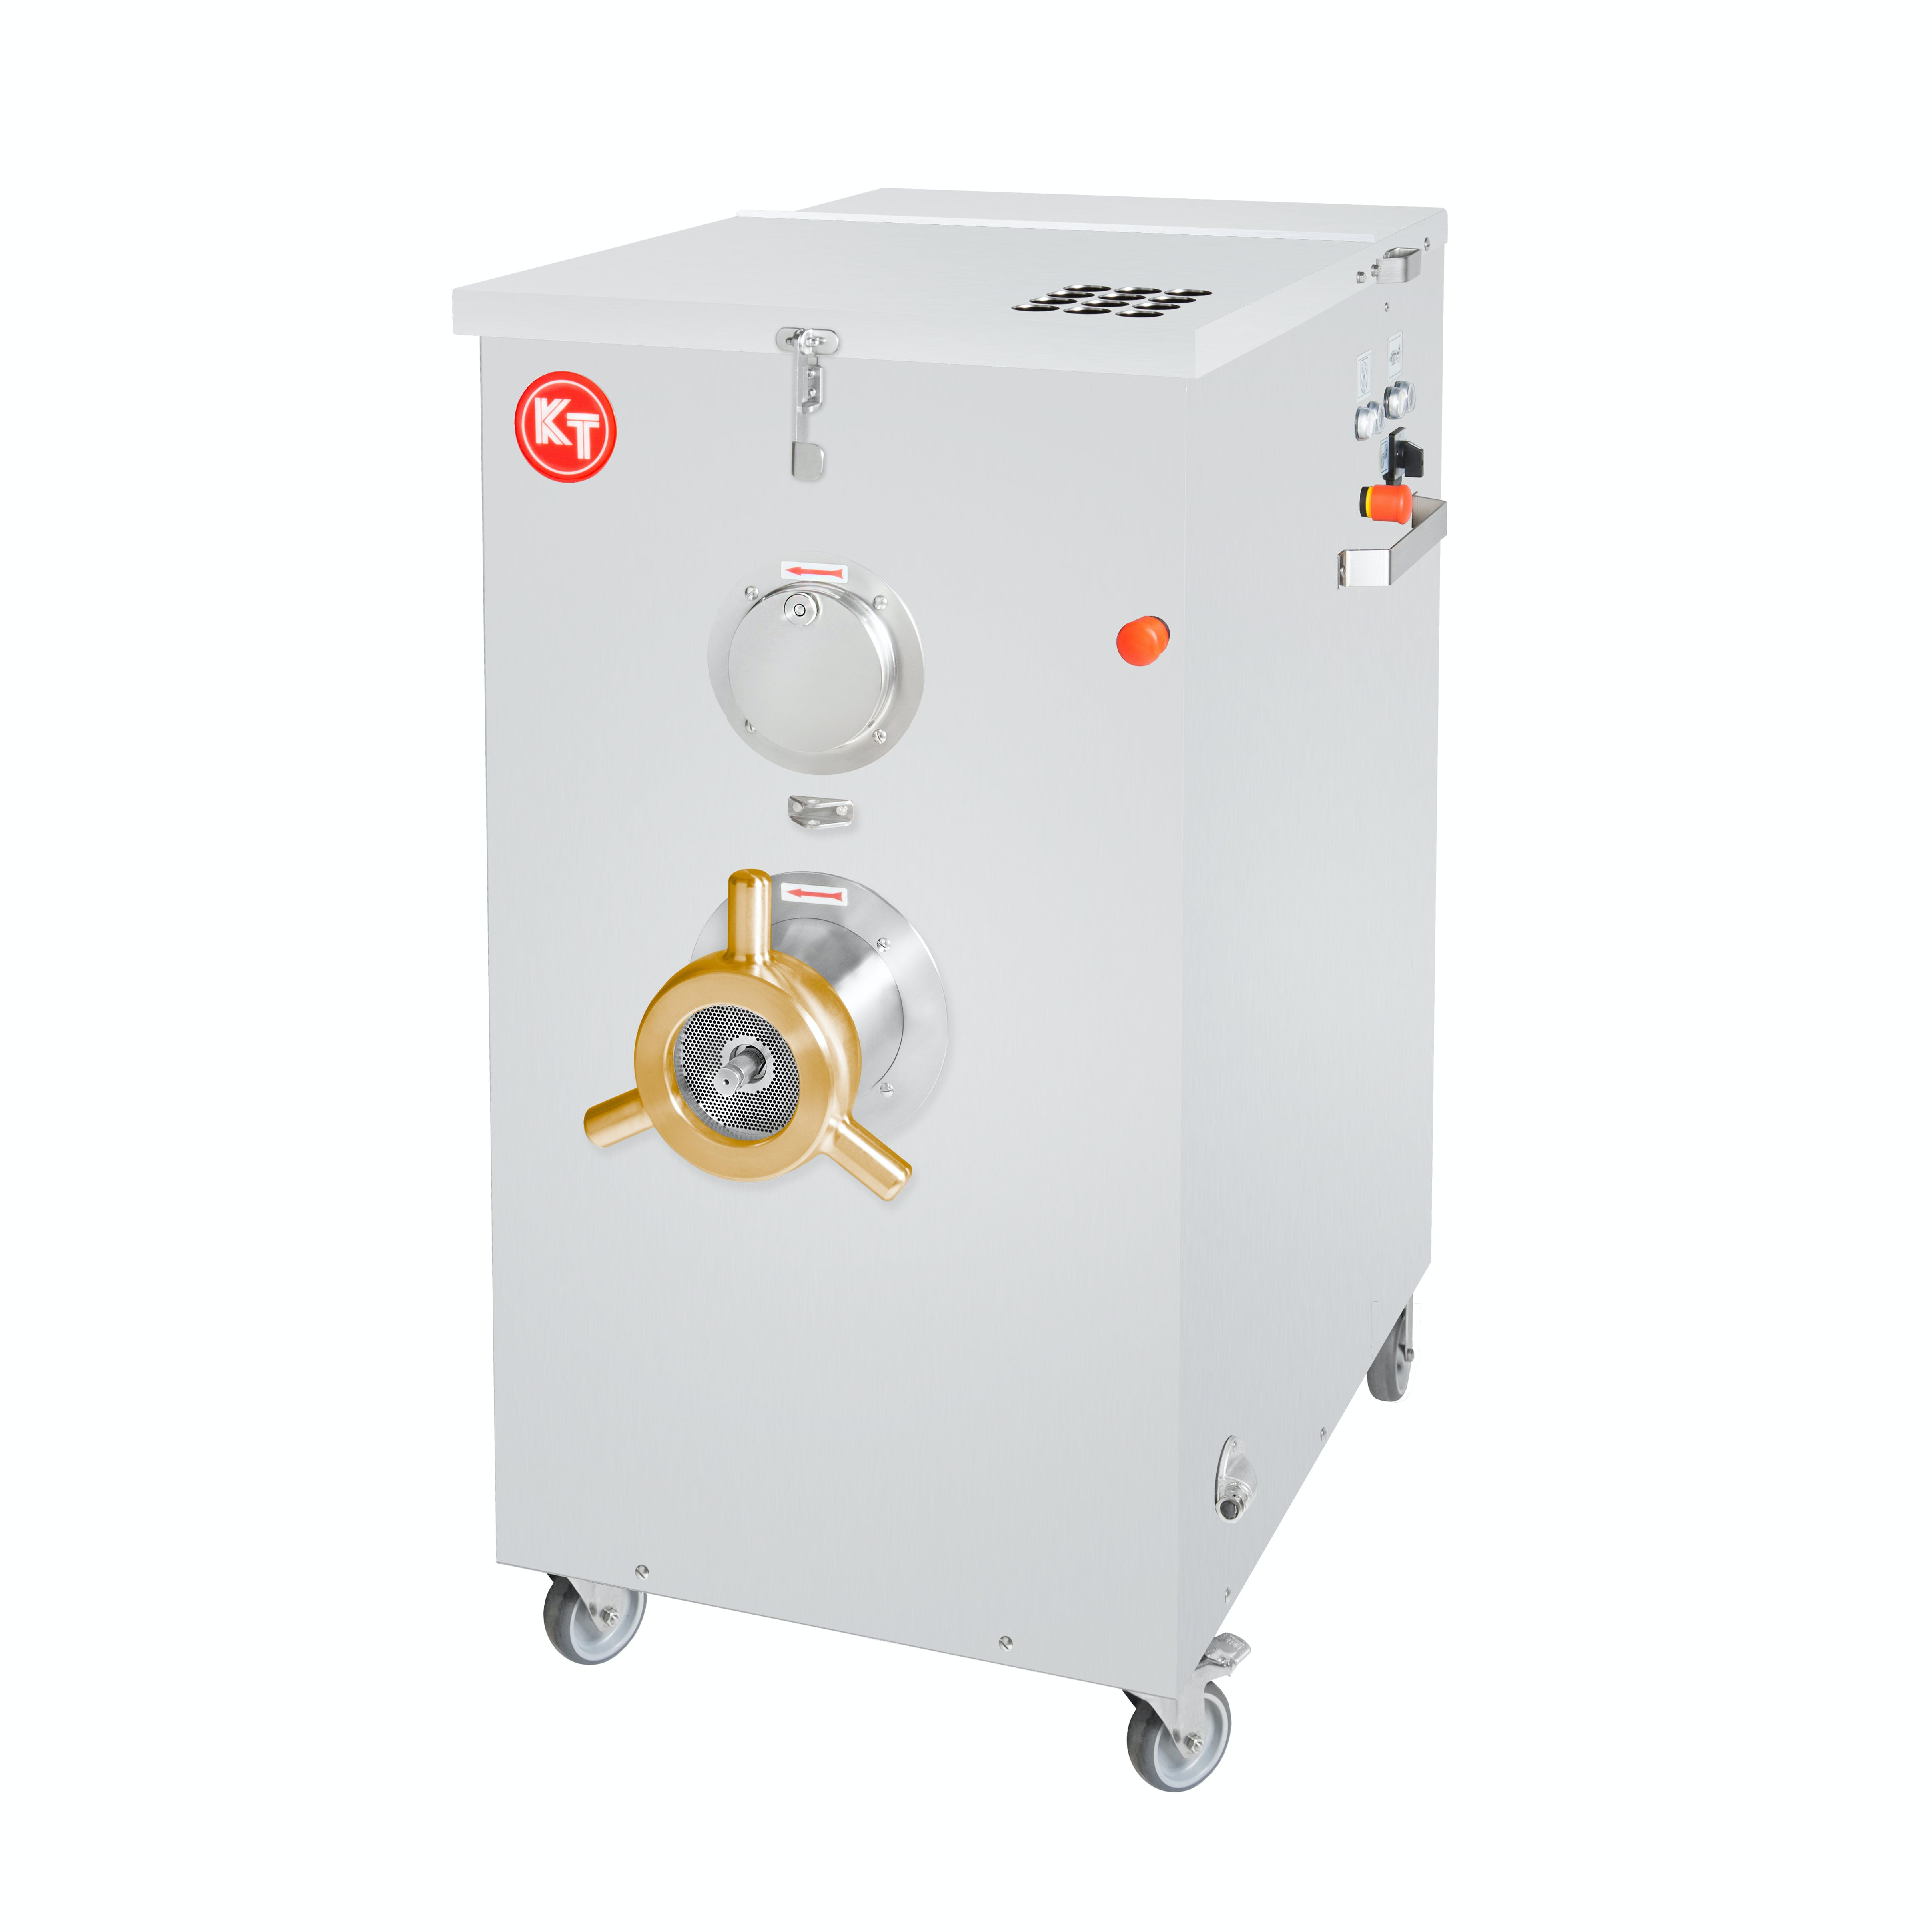 LM-42A Mixer Grinder - LM-42A Mixer Grinder - sold by Fusion Tech Integrated Inc.